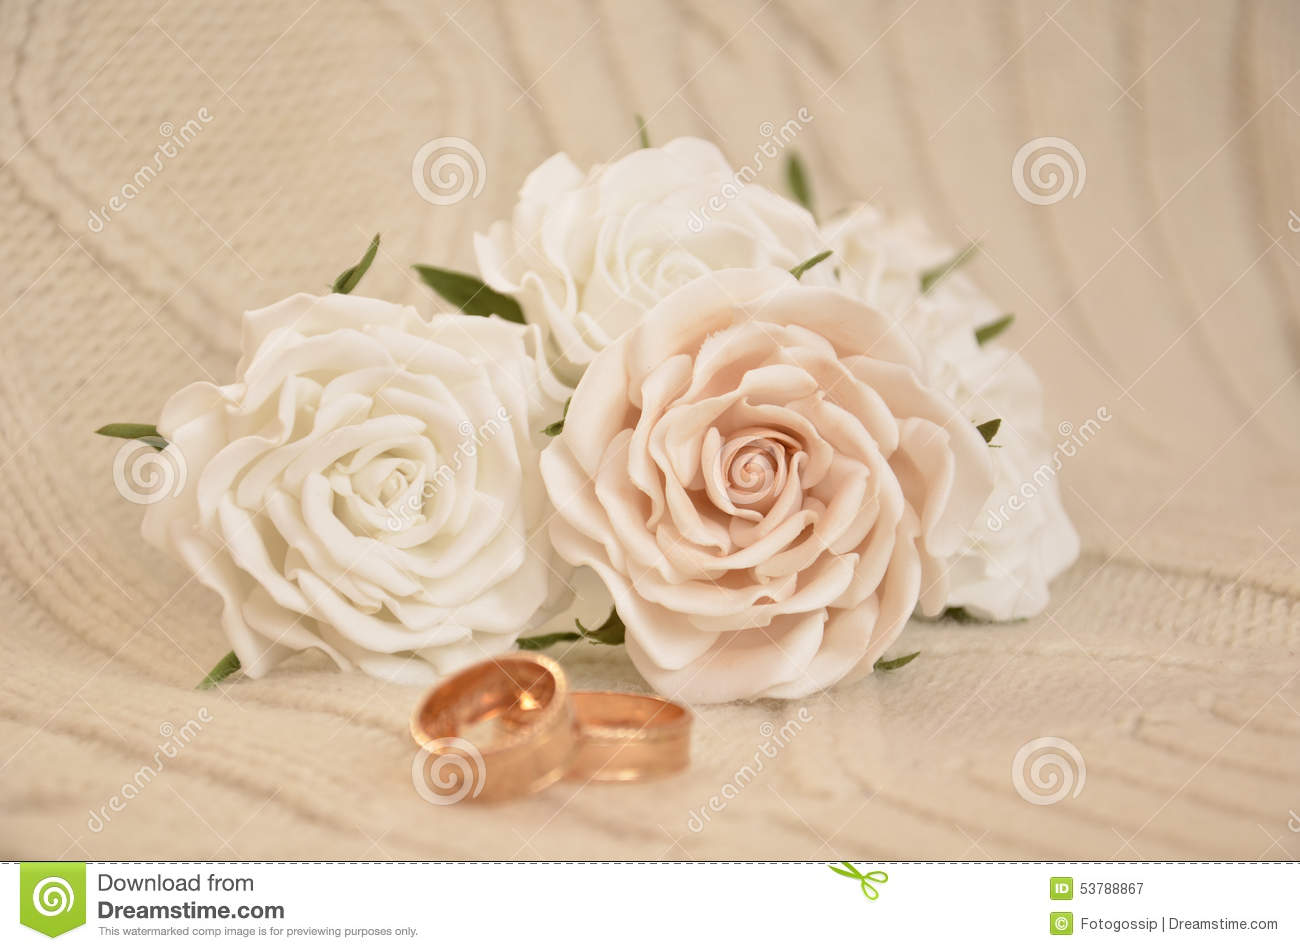 Wedding rings and white roses